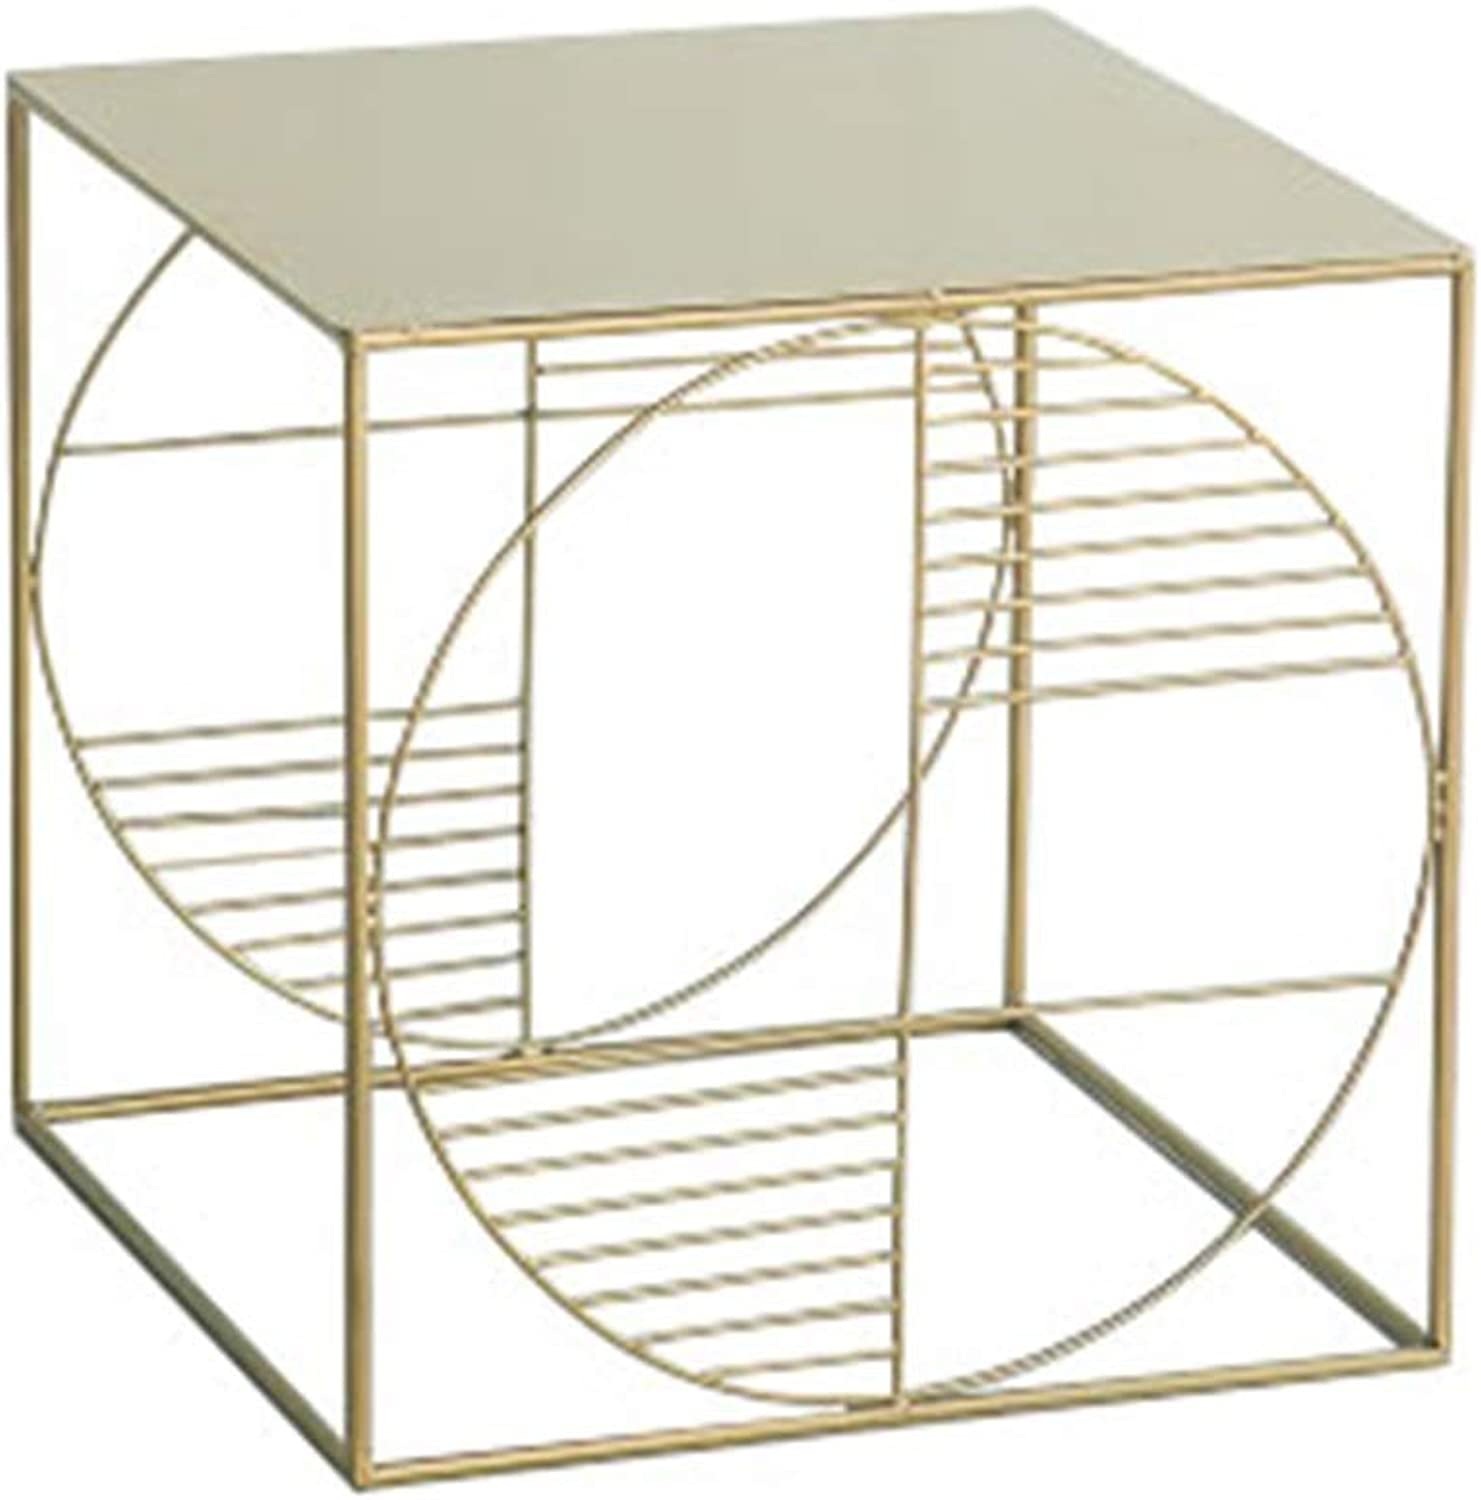 Metal Square Table Removable for Living Room Bedroom Study 007